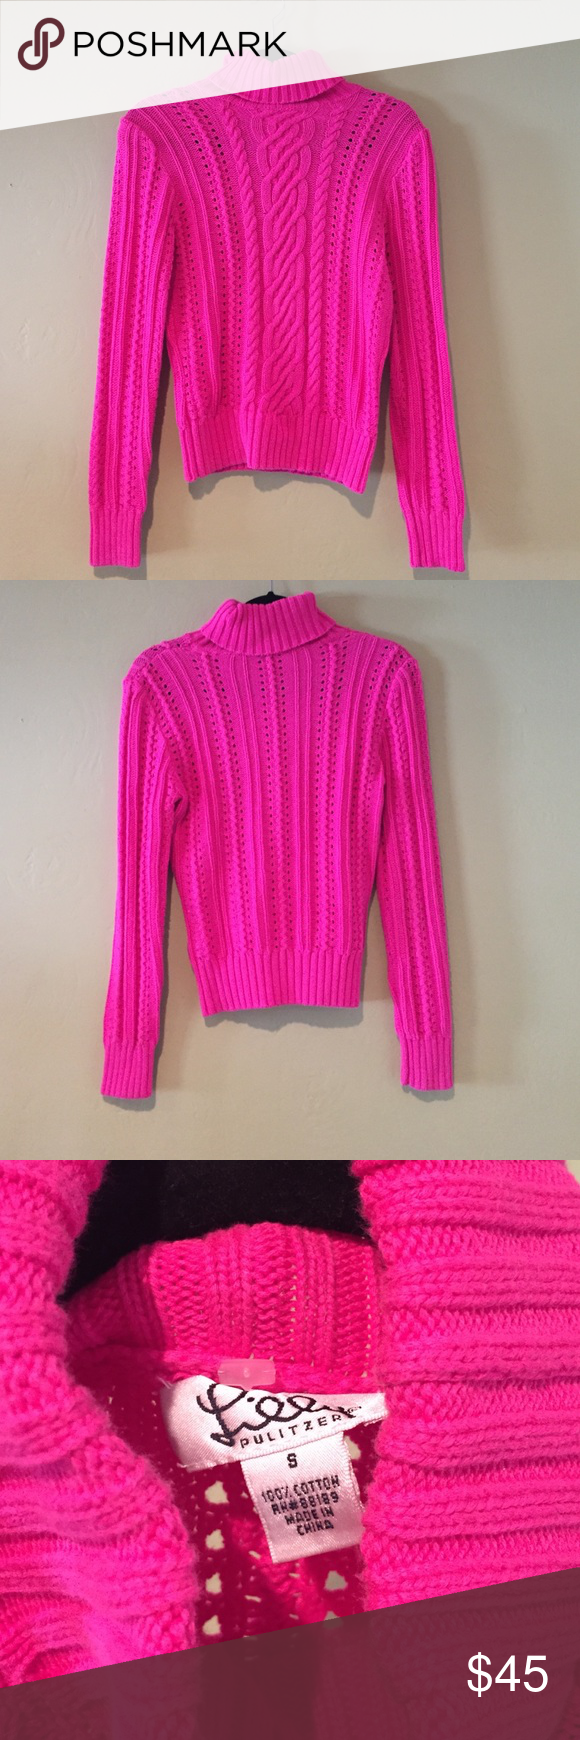 Lilly Pulitzer Turtleneck Cable-Knit Sweater | Cable knit sweaters ...